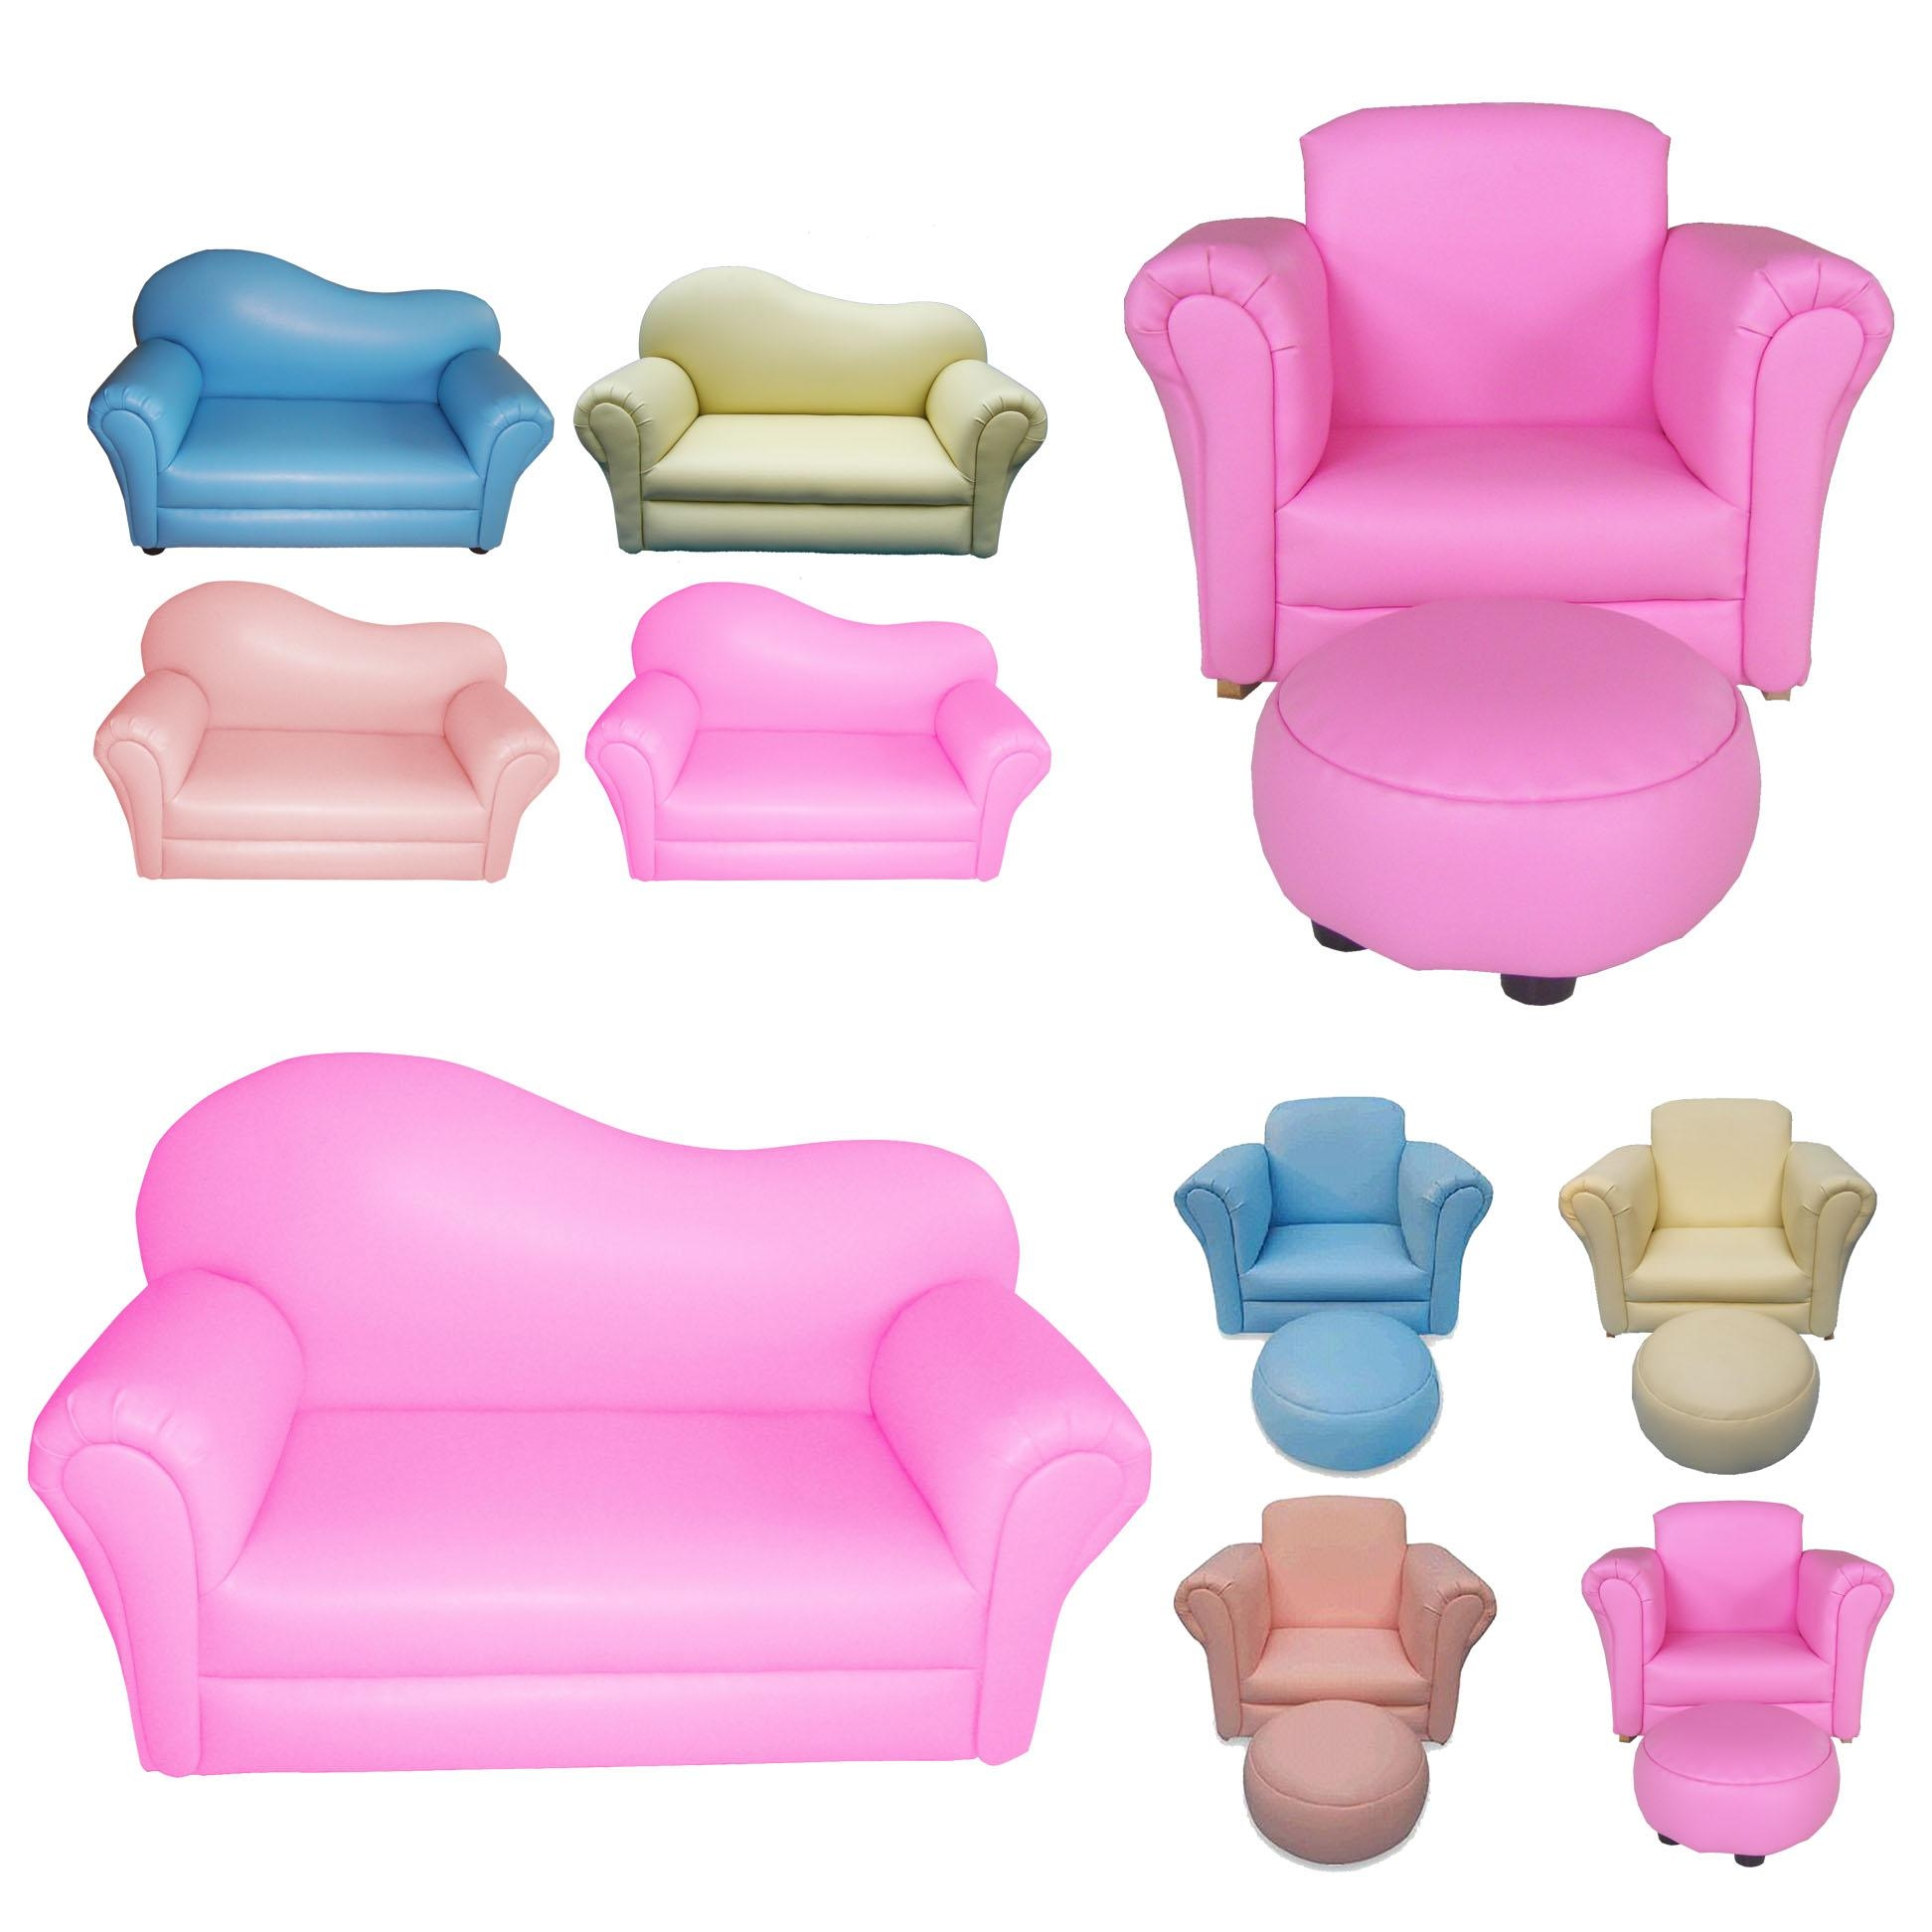 Sofa Chair For Toddler 20 Top Personalized Kids Chairs And Sofas Sofa Ideas